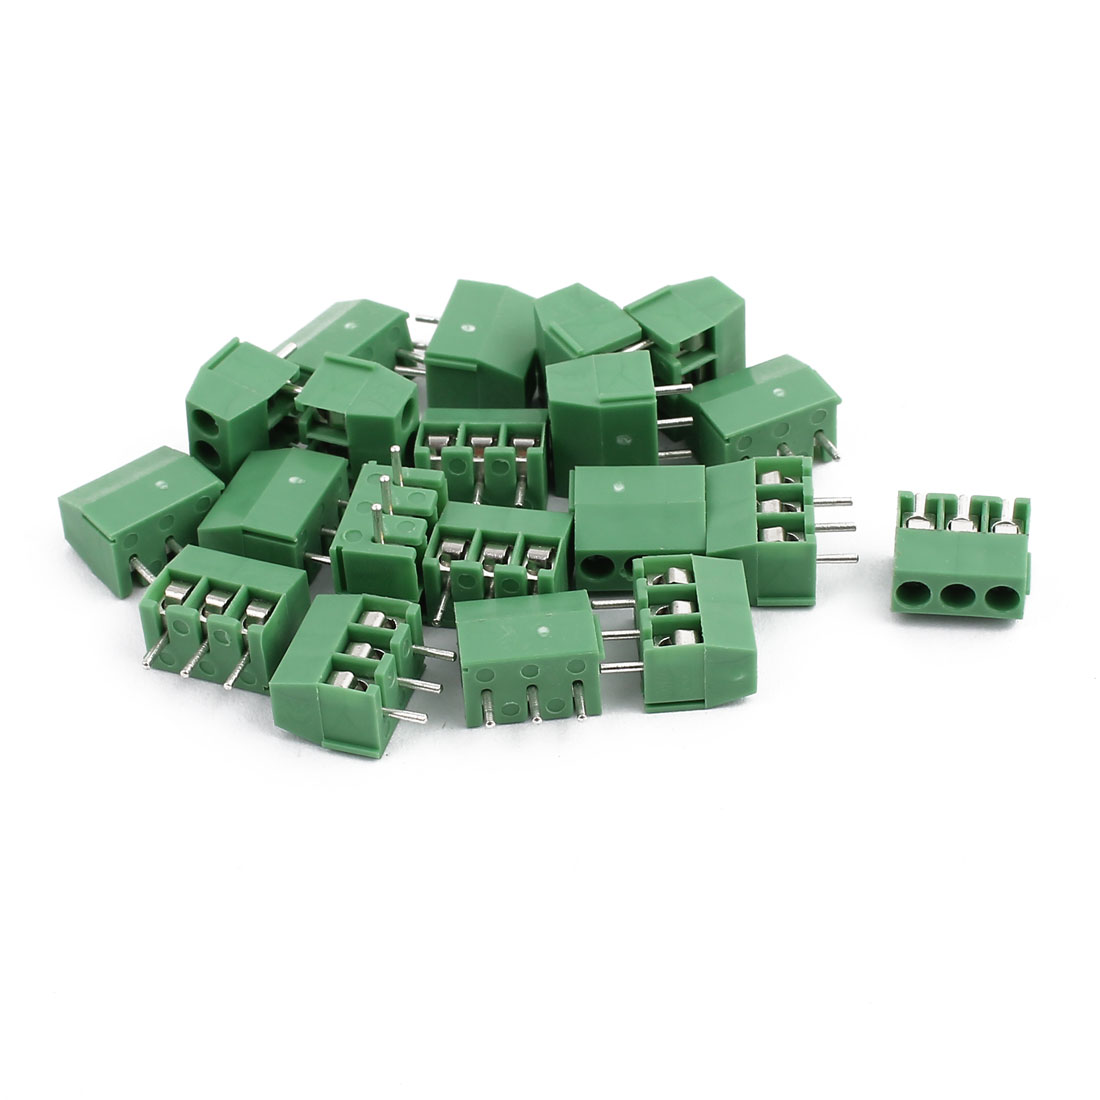 20Pcs ZB350 AC300V 10A 3P 3.5mm Pitch Screw PCB Terminal Blocks Connector Green